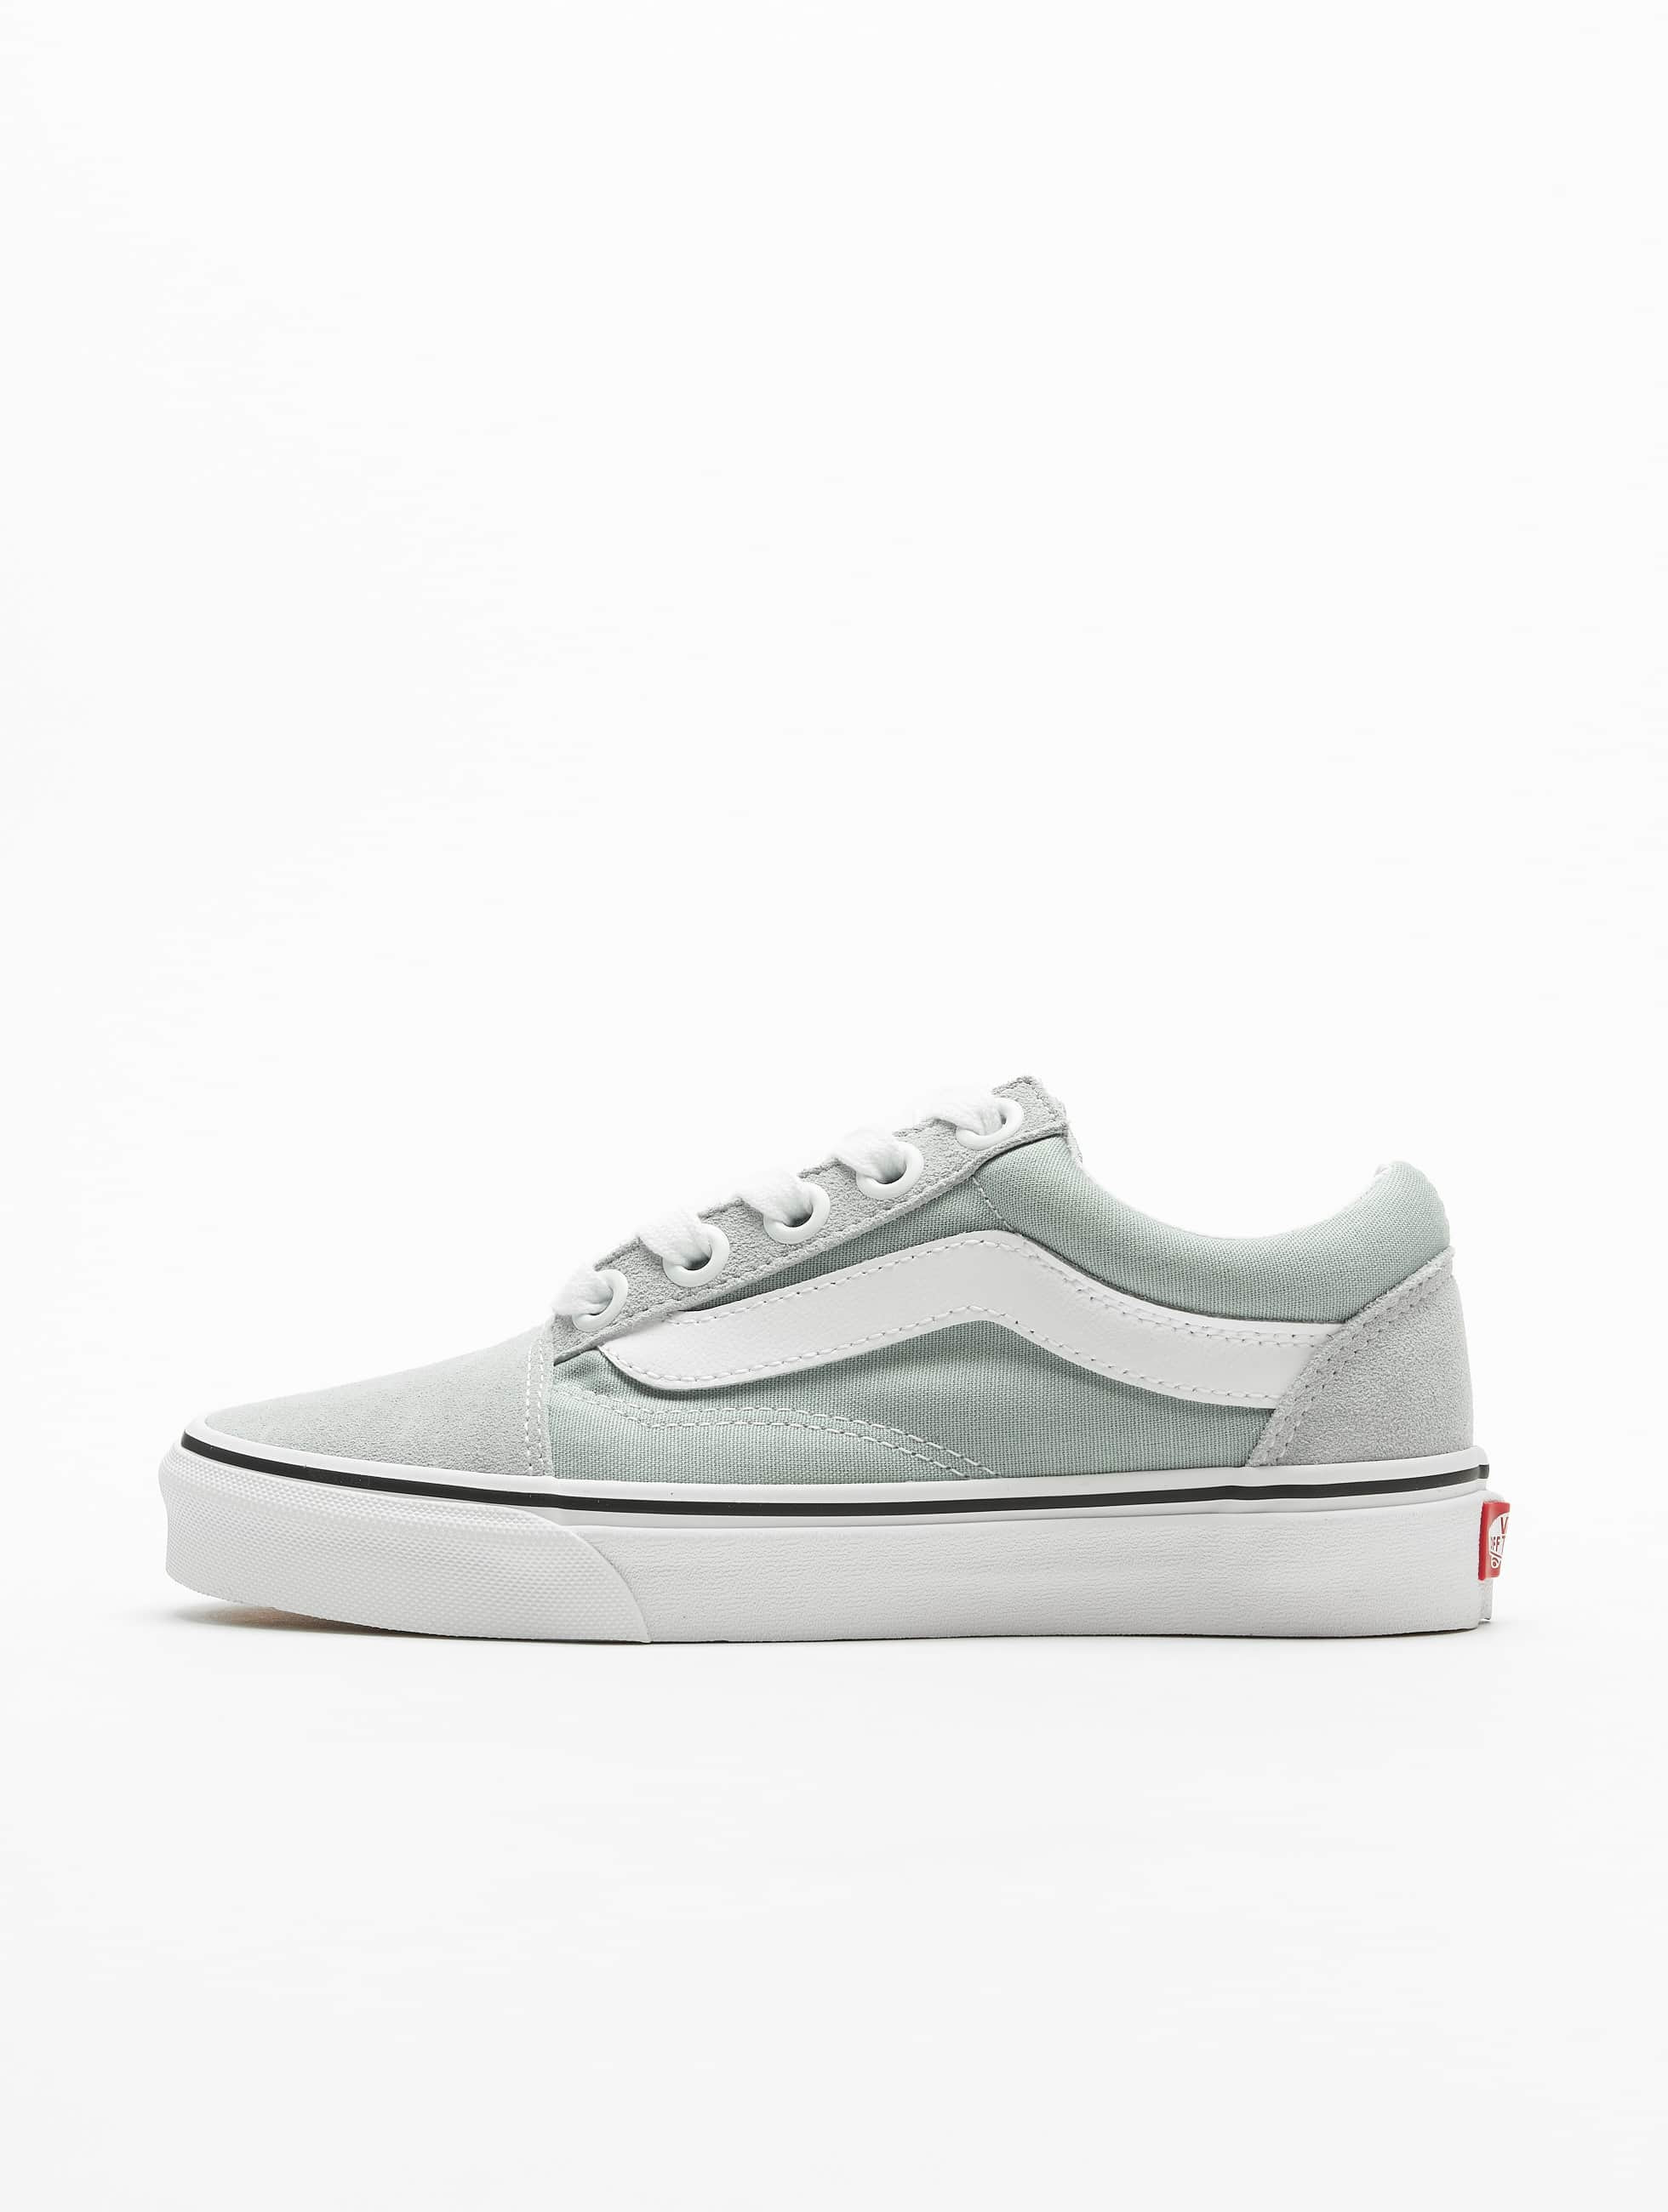 Vans Ua Old Skool Os Puritan Sneakers GrayTrue White